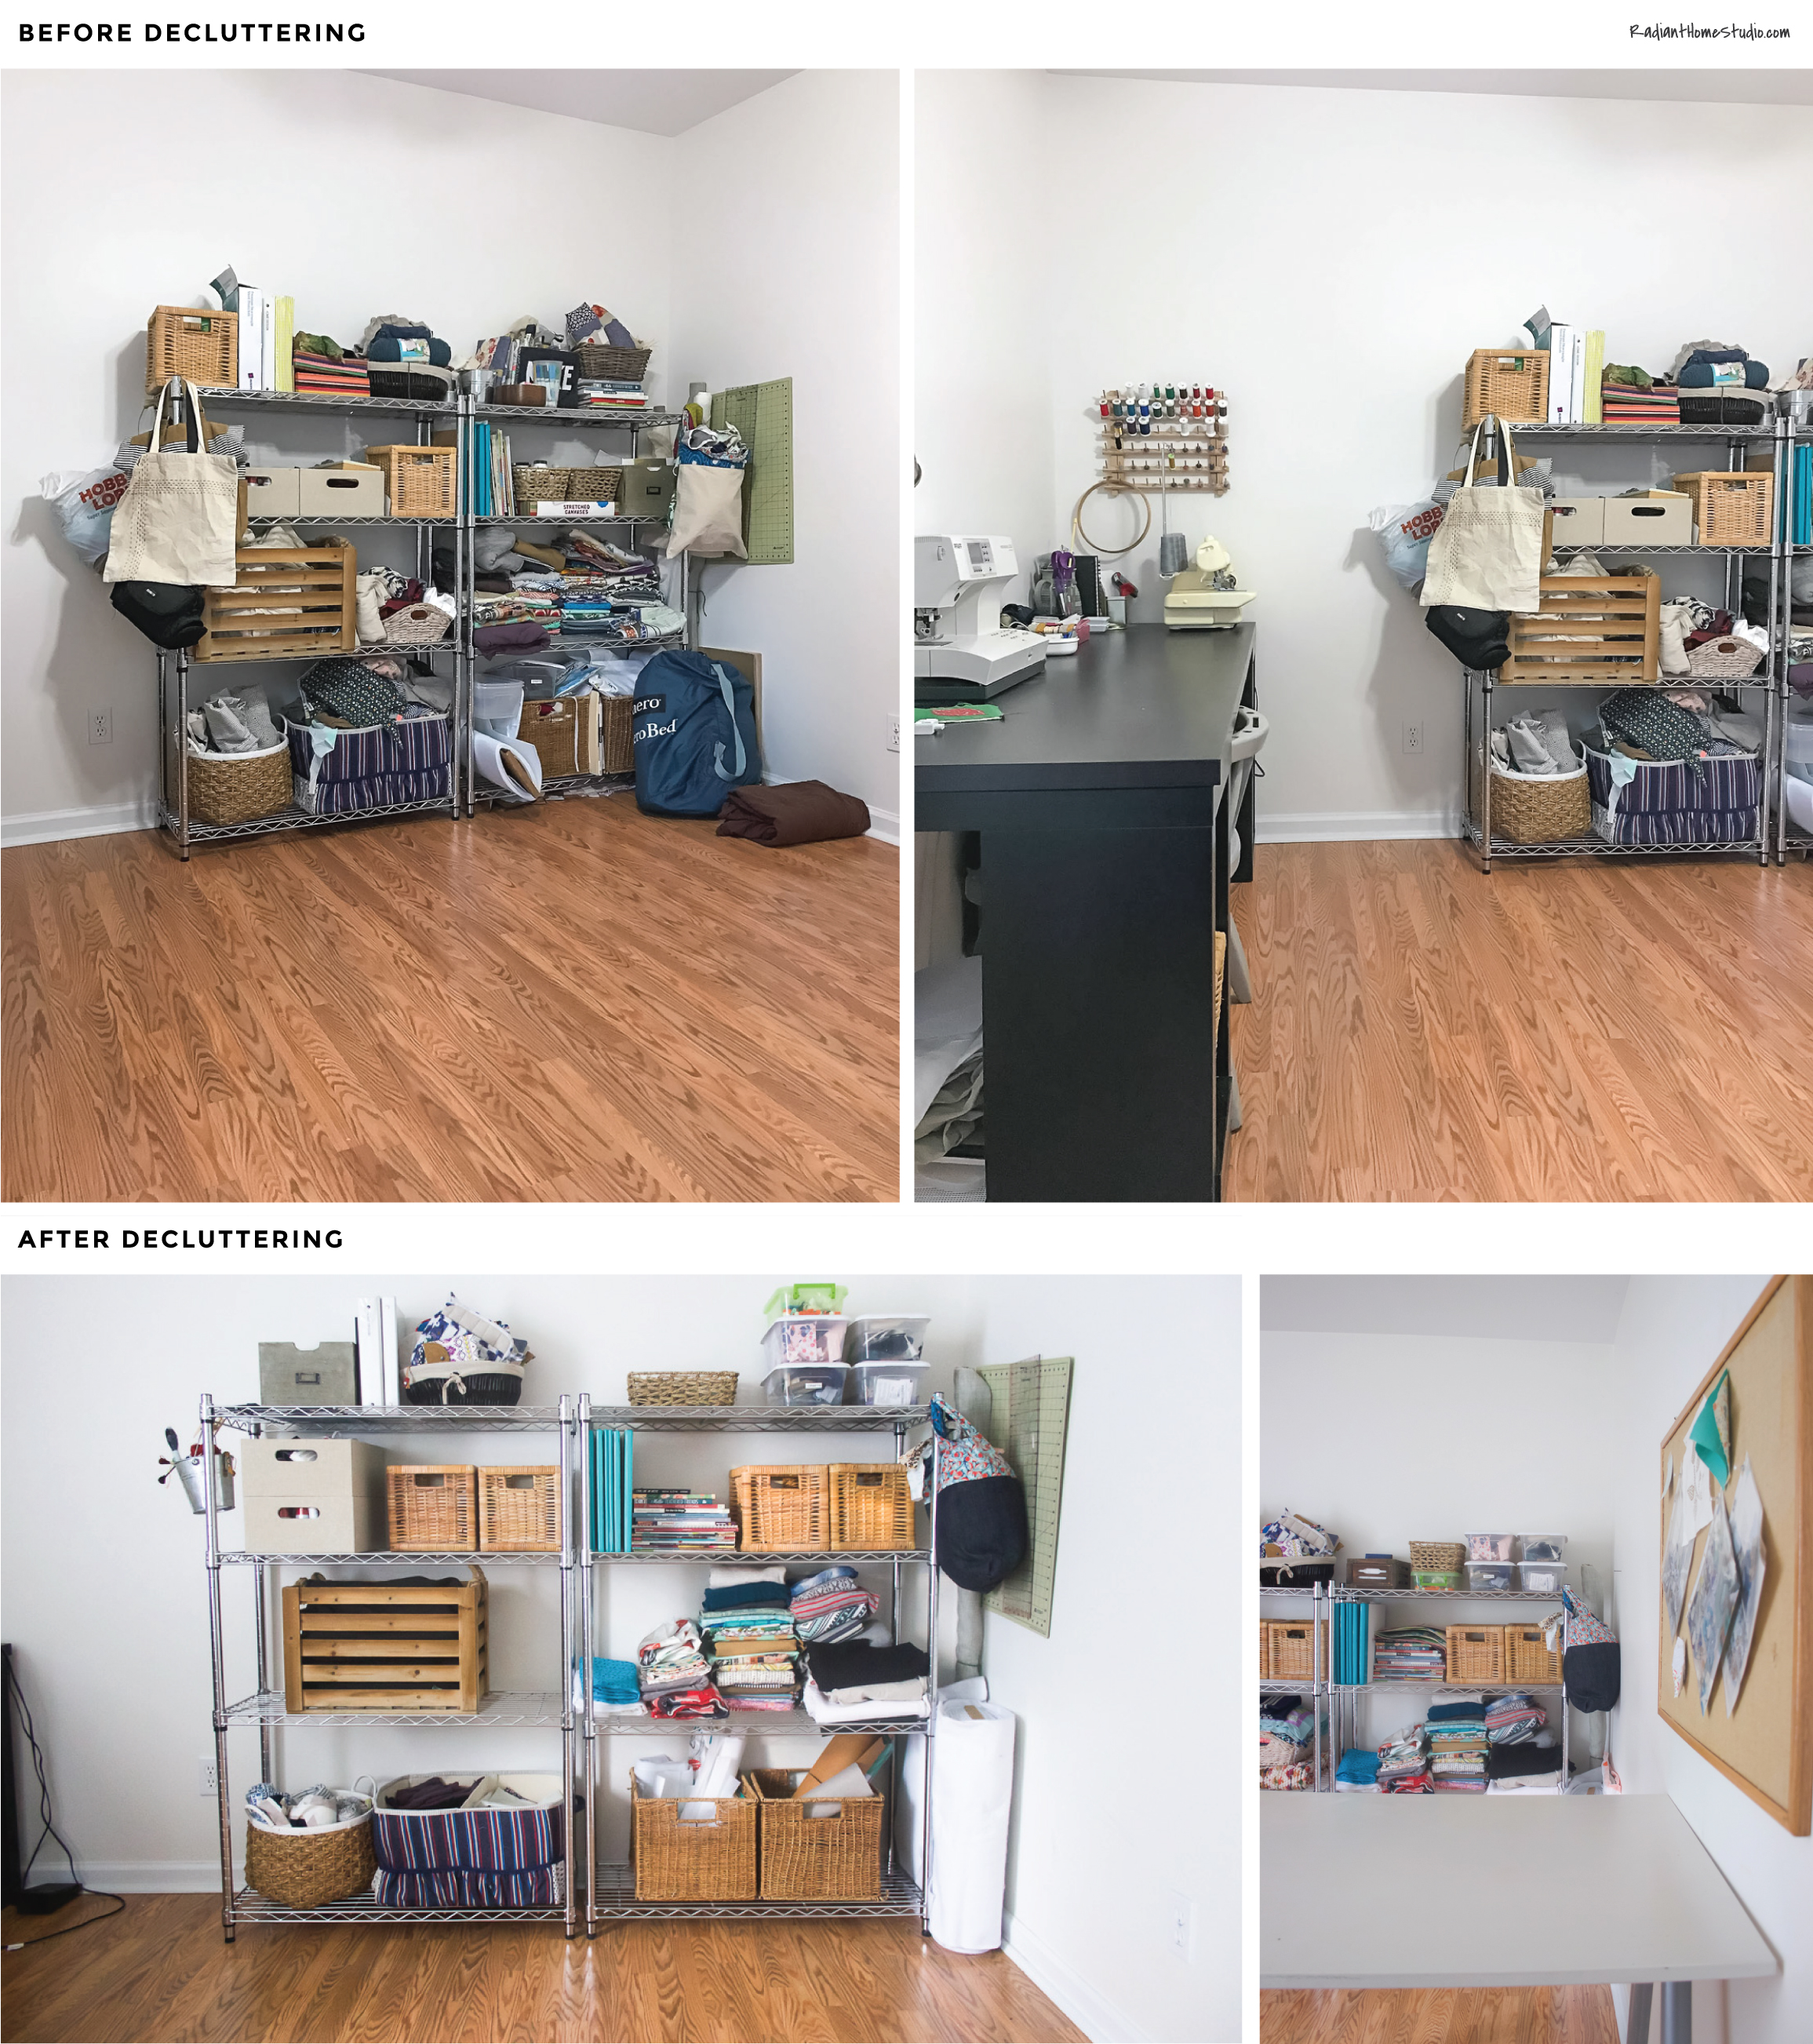 Declutter Your Sewing Room to Spark Creativity | Sewing Room Organization Before & After | Radiant Home Studio